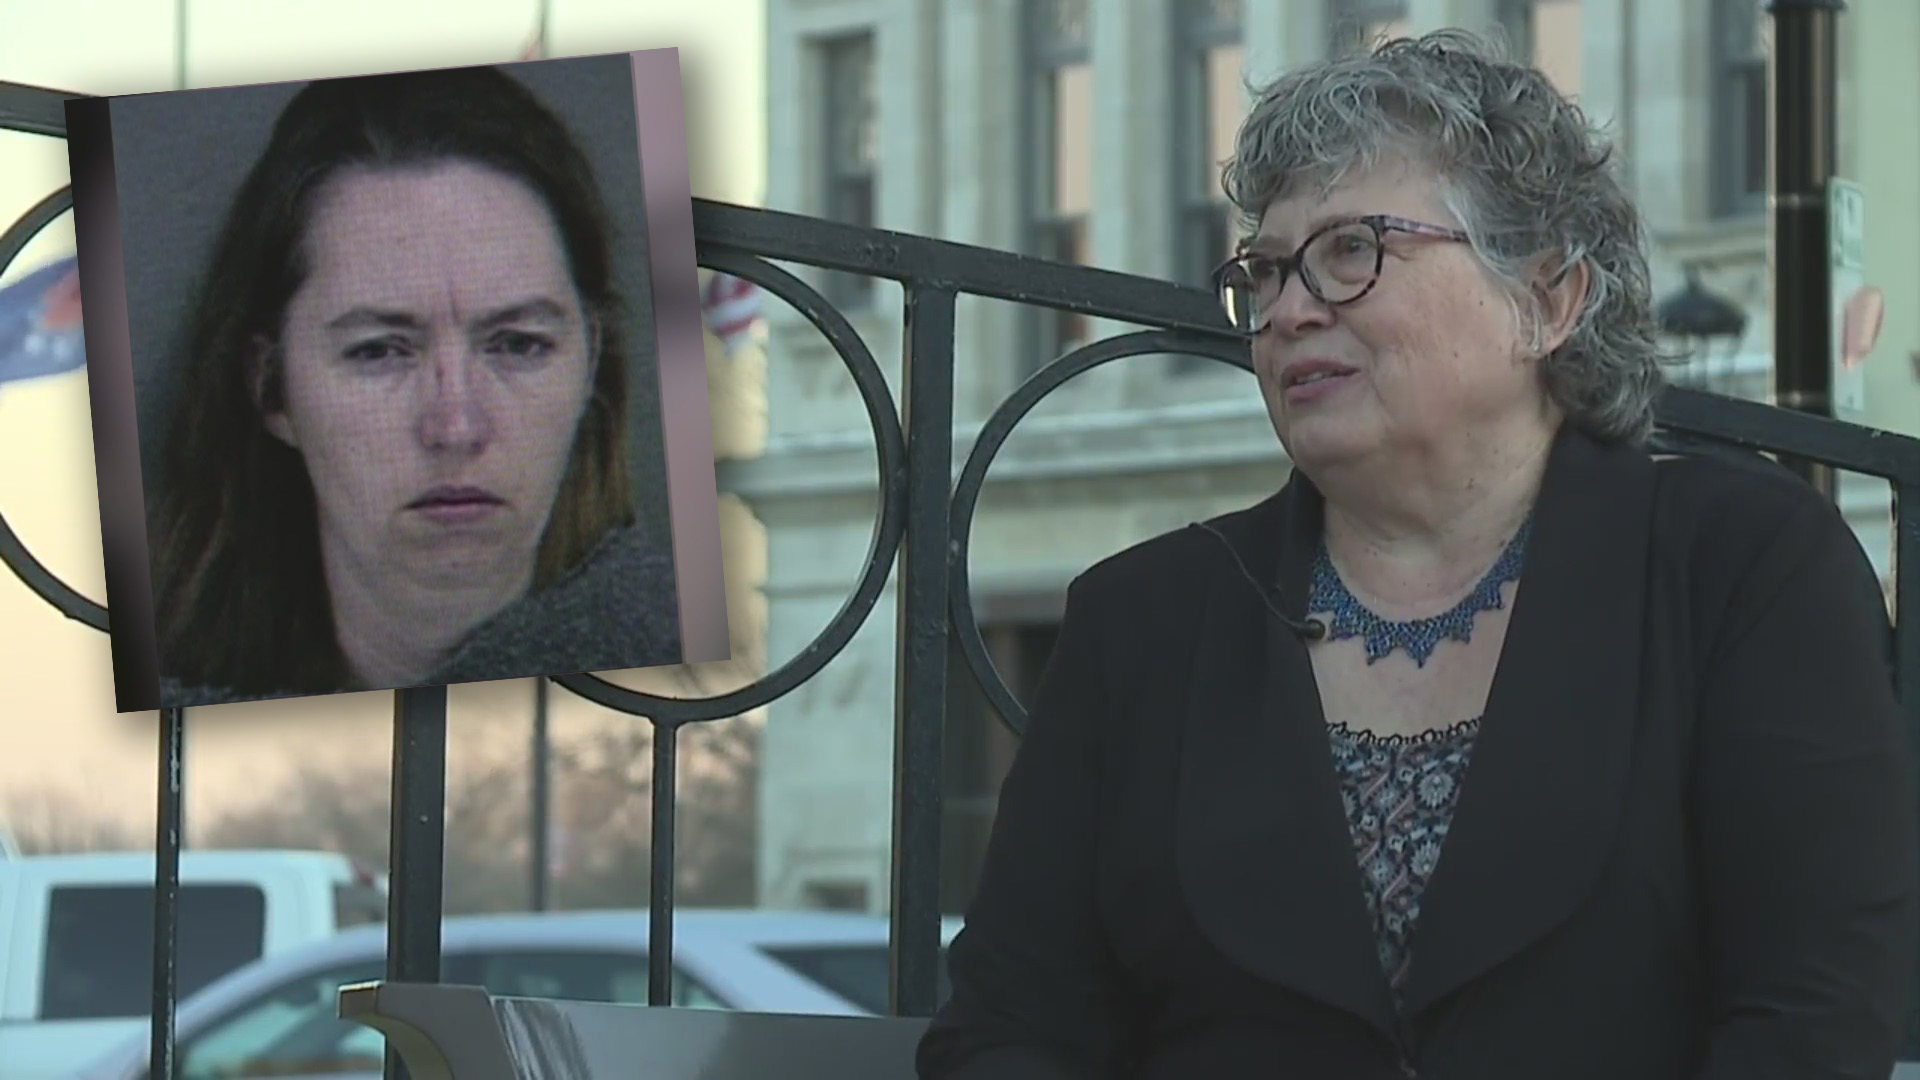 Death Row Inmate S Notorious Friend Says She Got To Know Real Lisa Montgomery Behind Bars Fox 4 Kansas City Wdaf Tv News Weather Sports